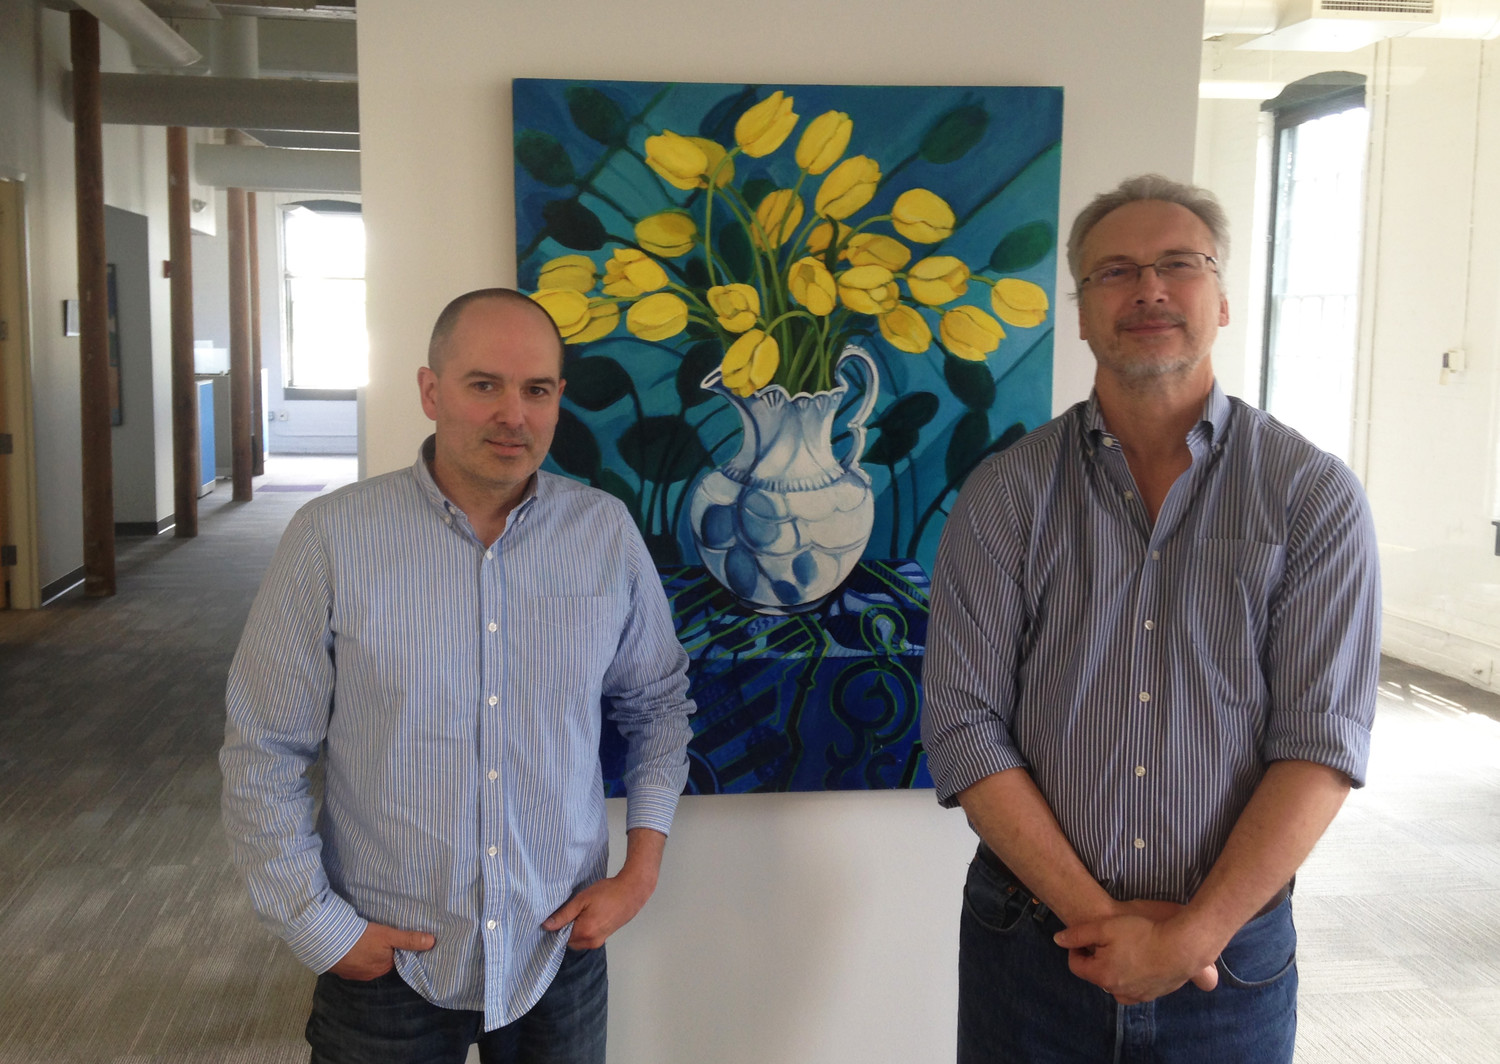 Clifford Grimm, left, and William Martin, of EpiVax, at the new office location in Olneyville.